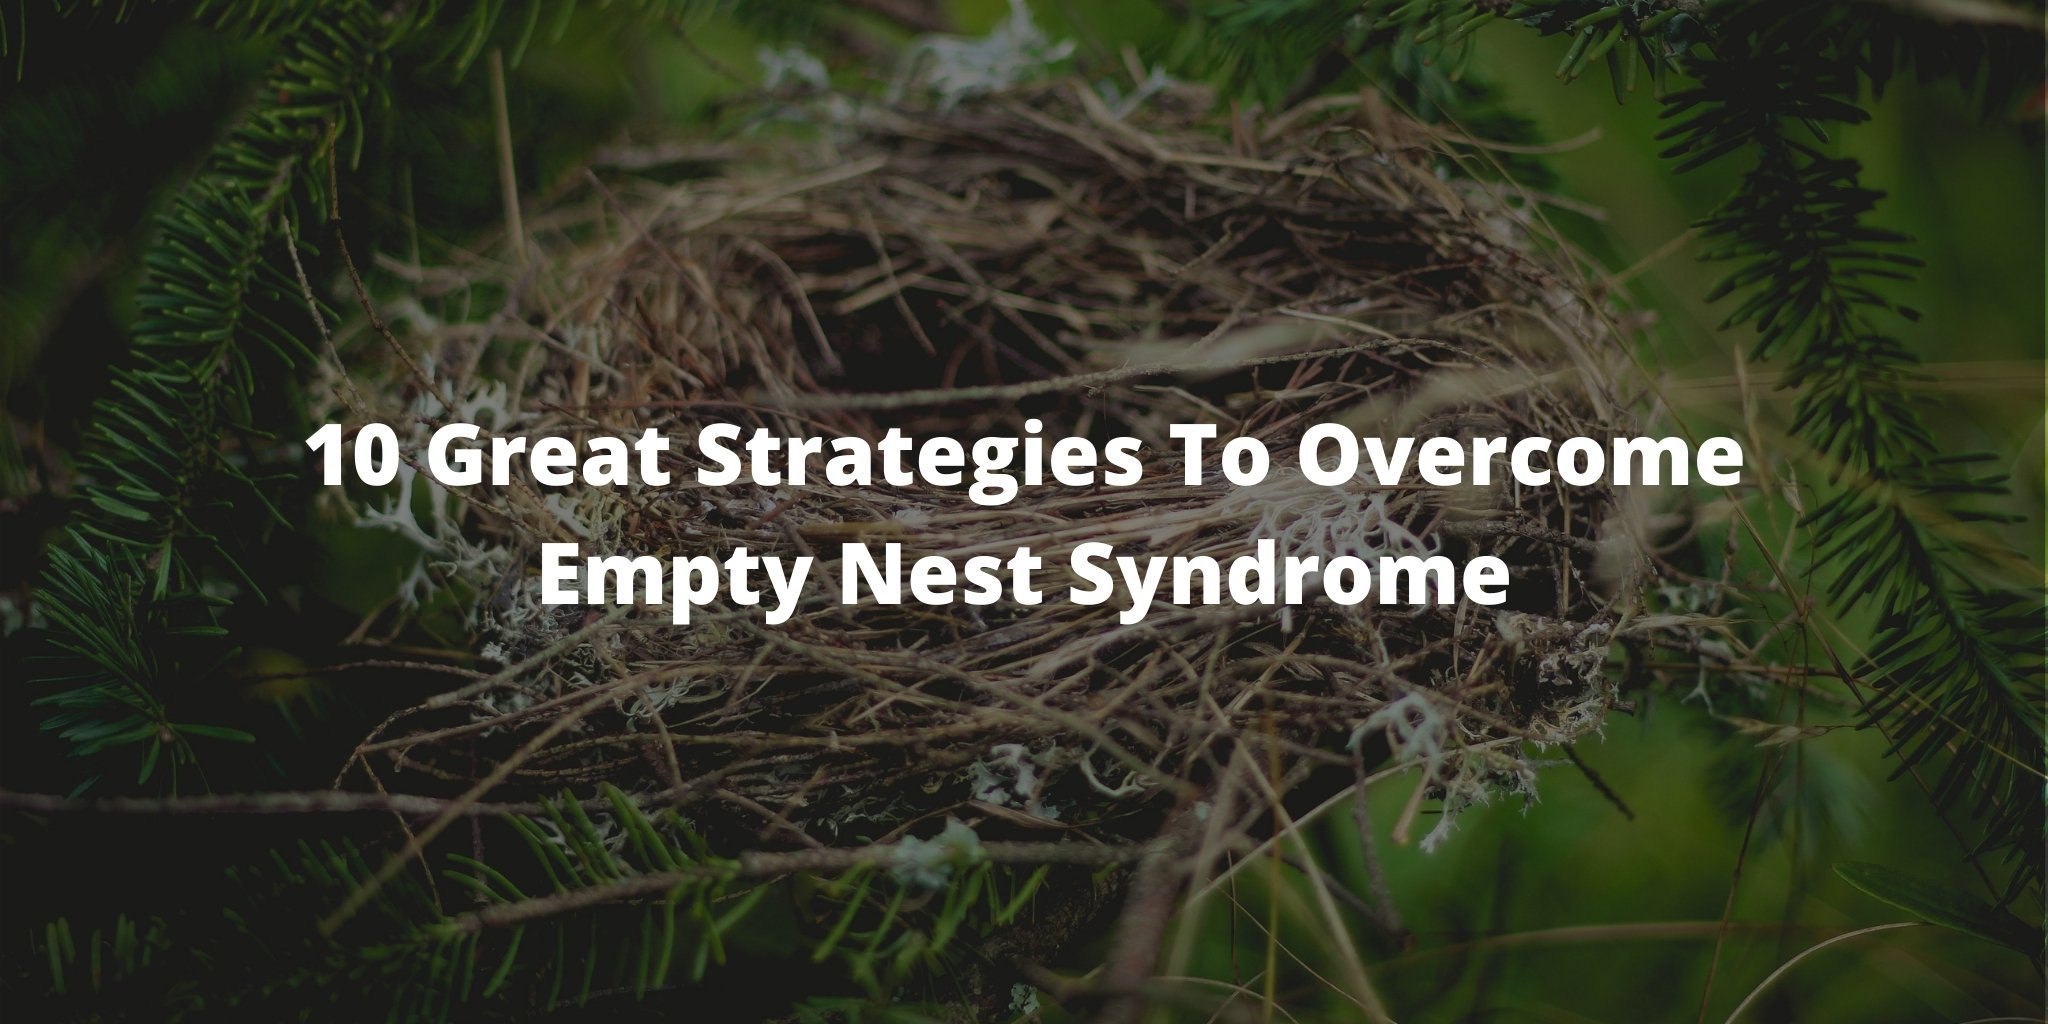 10 Great Strategies To Overcome Empty Nest Syndrome